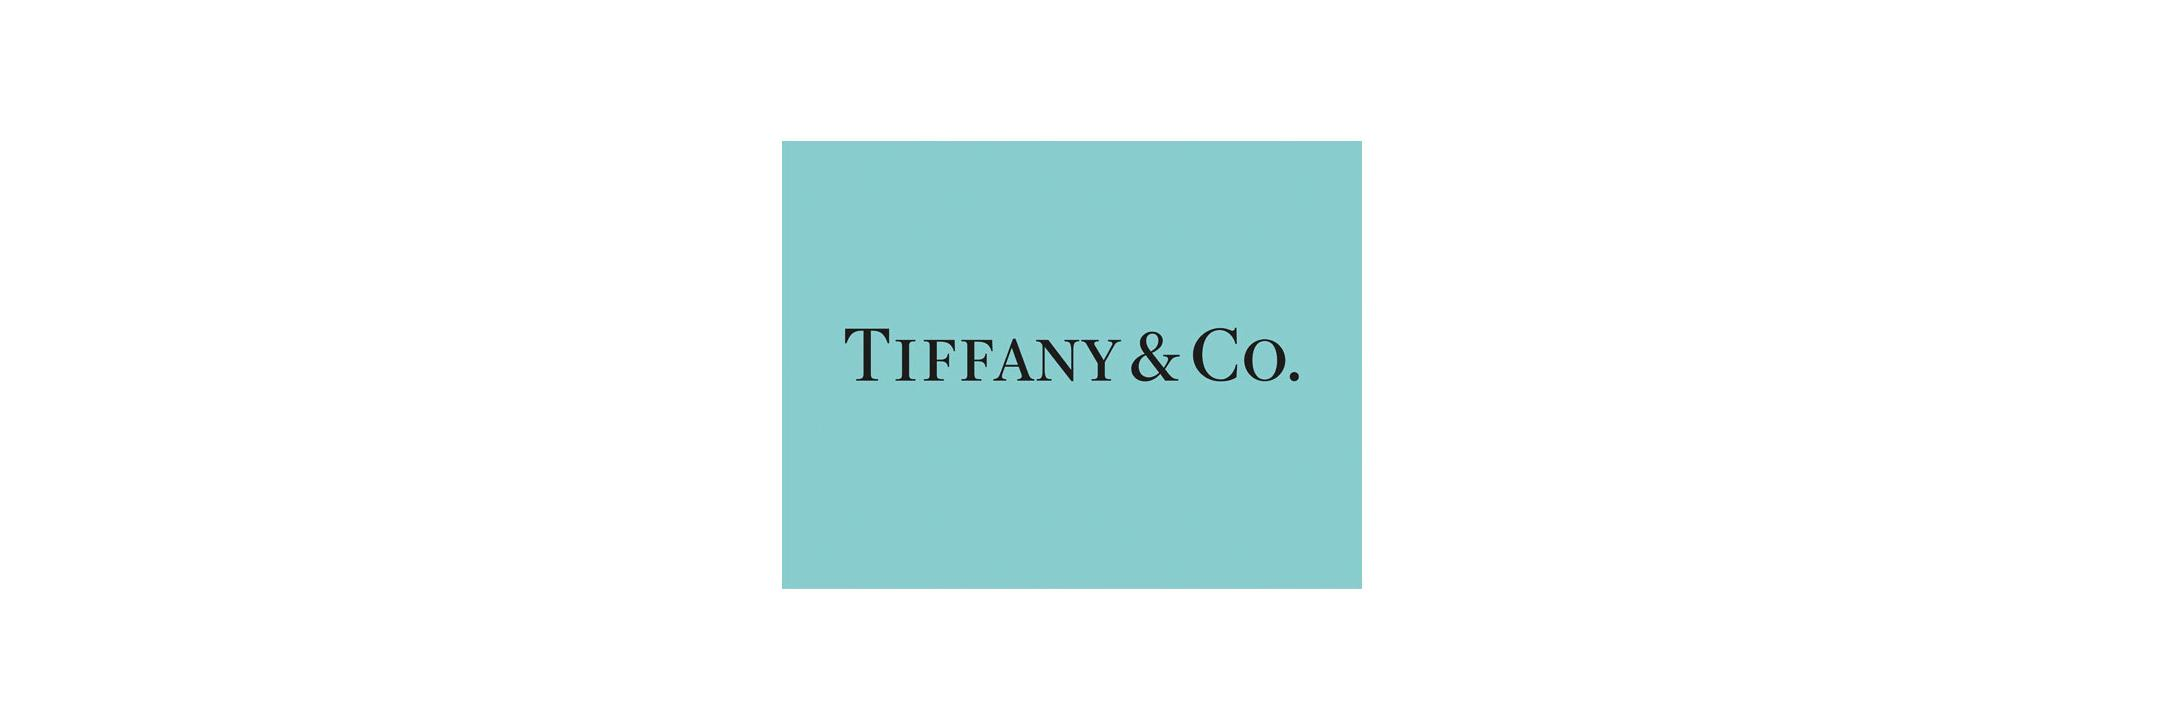 Tiffany & Co. eyewear